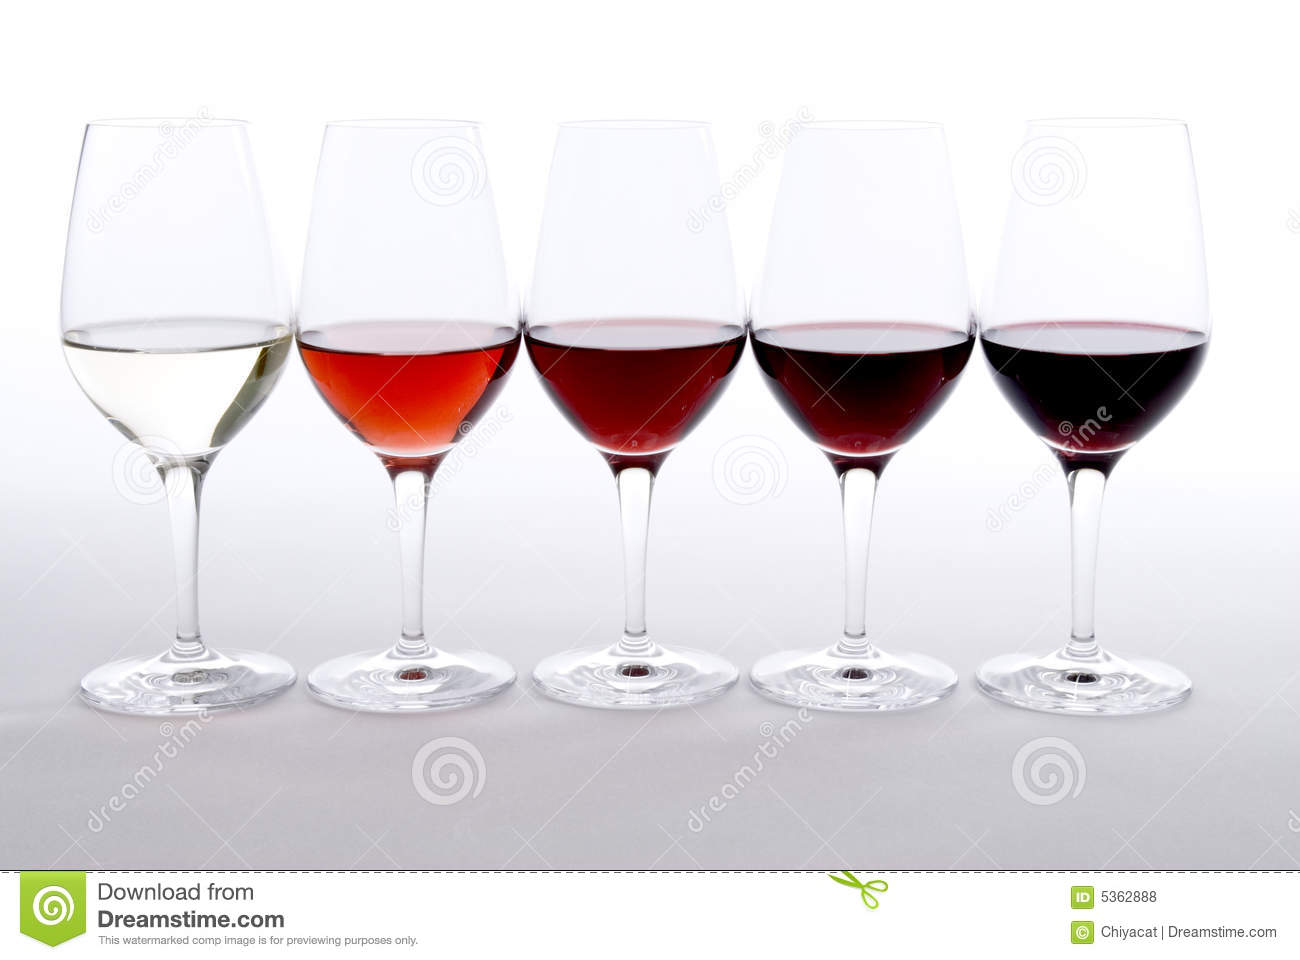 What Do You Need to Start a Wine Tasting Business?